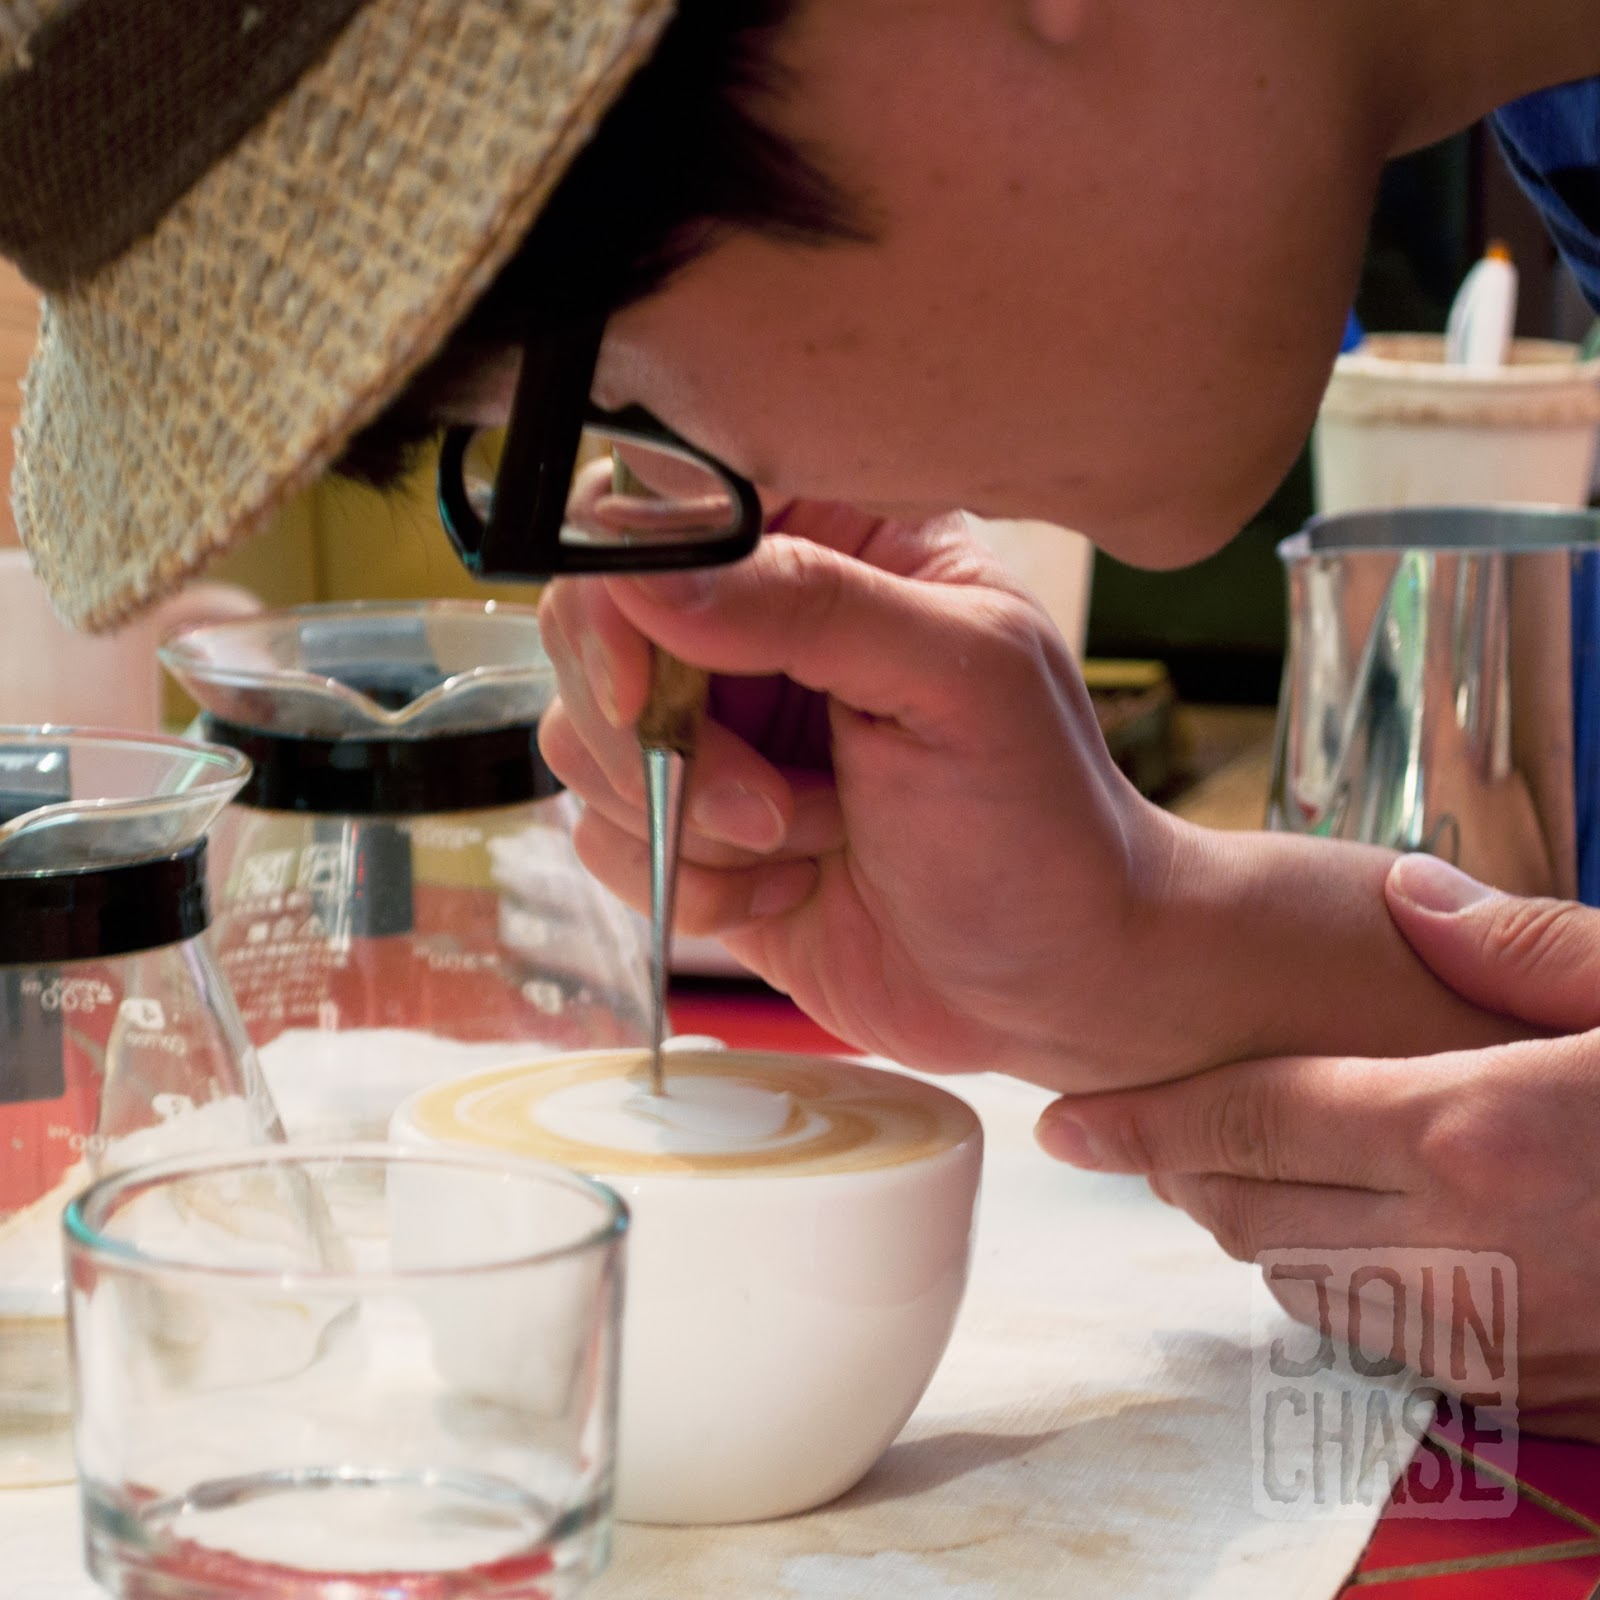 A Korean man making latte art in Ochang, South Korea.